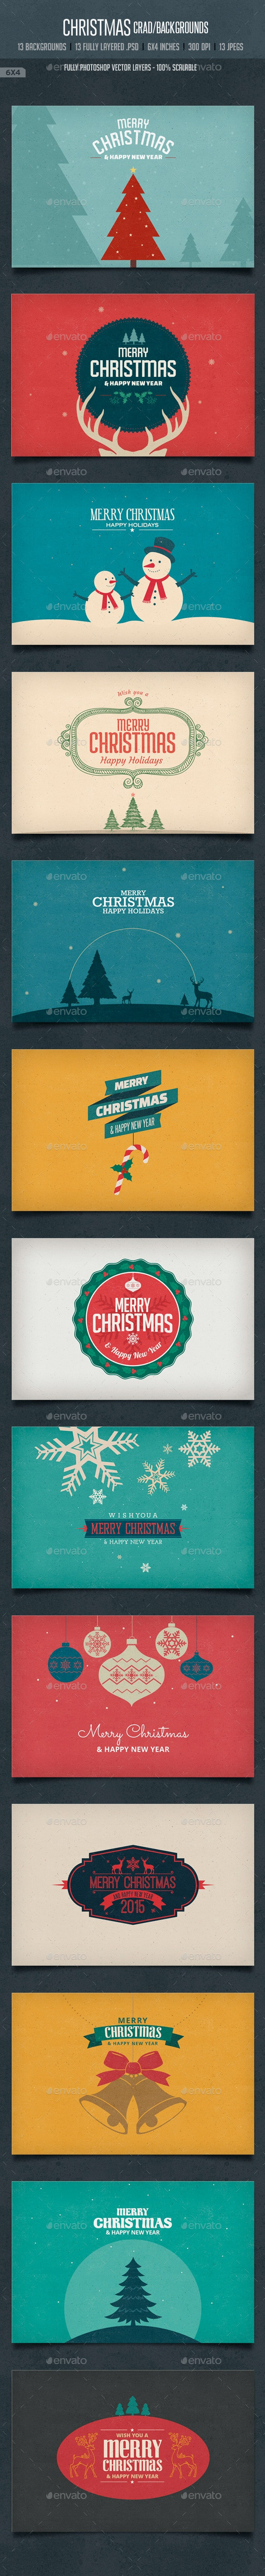 Vintage Christmas Card / Backgrounds - Backgrounds Graphics